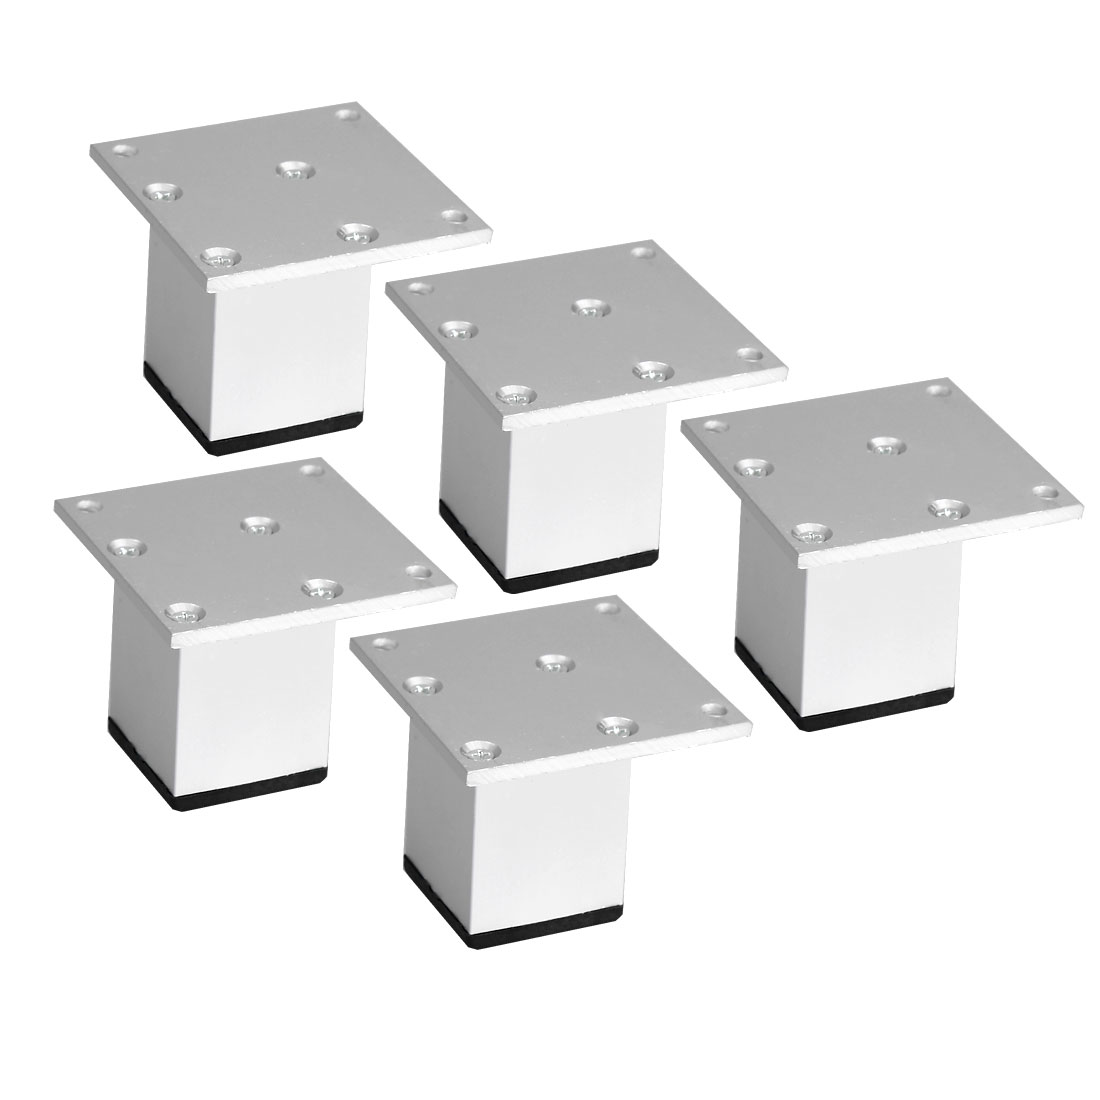 "2"" Furniture Legs Aluminium Alloy Table Feet Replacement Height Adjuster 5pcs"